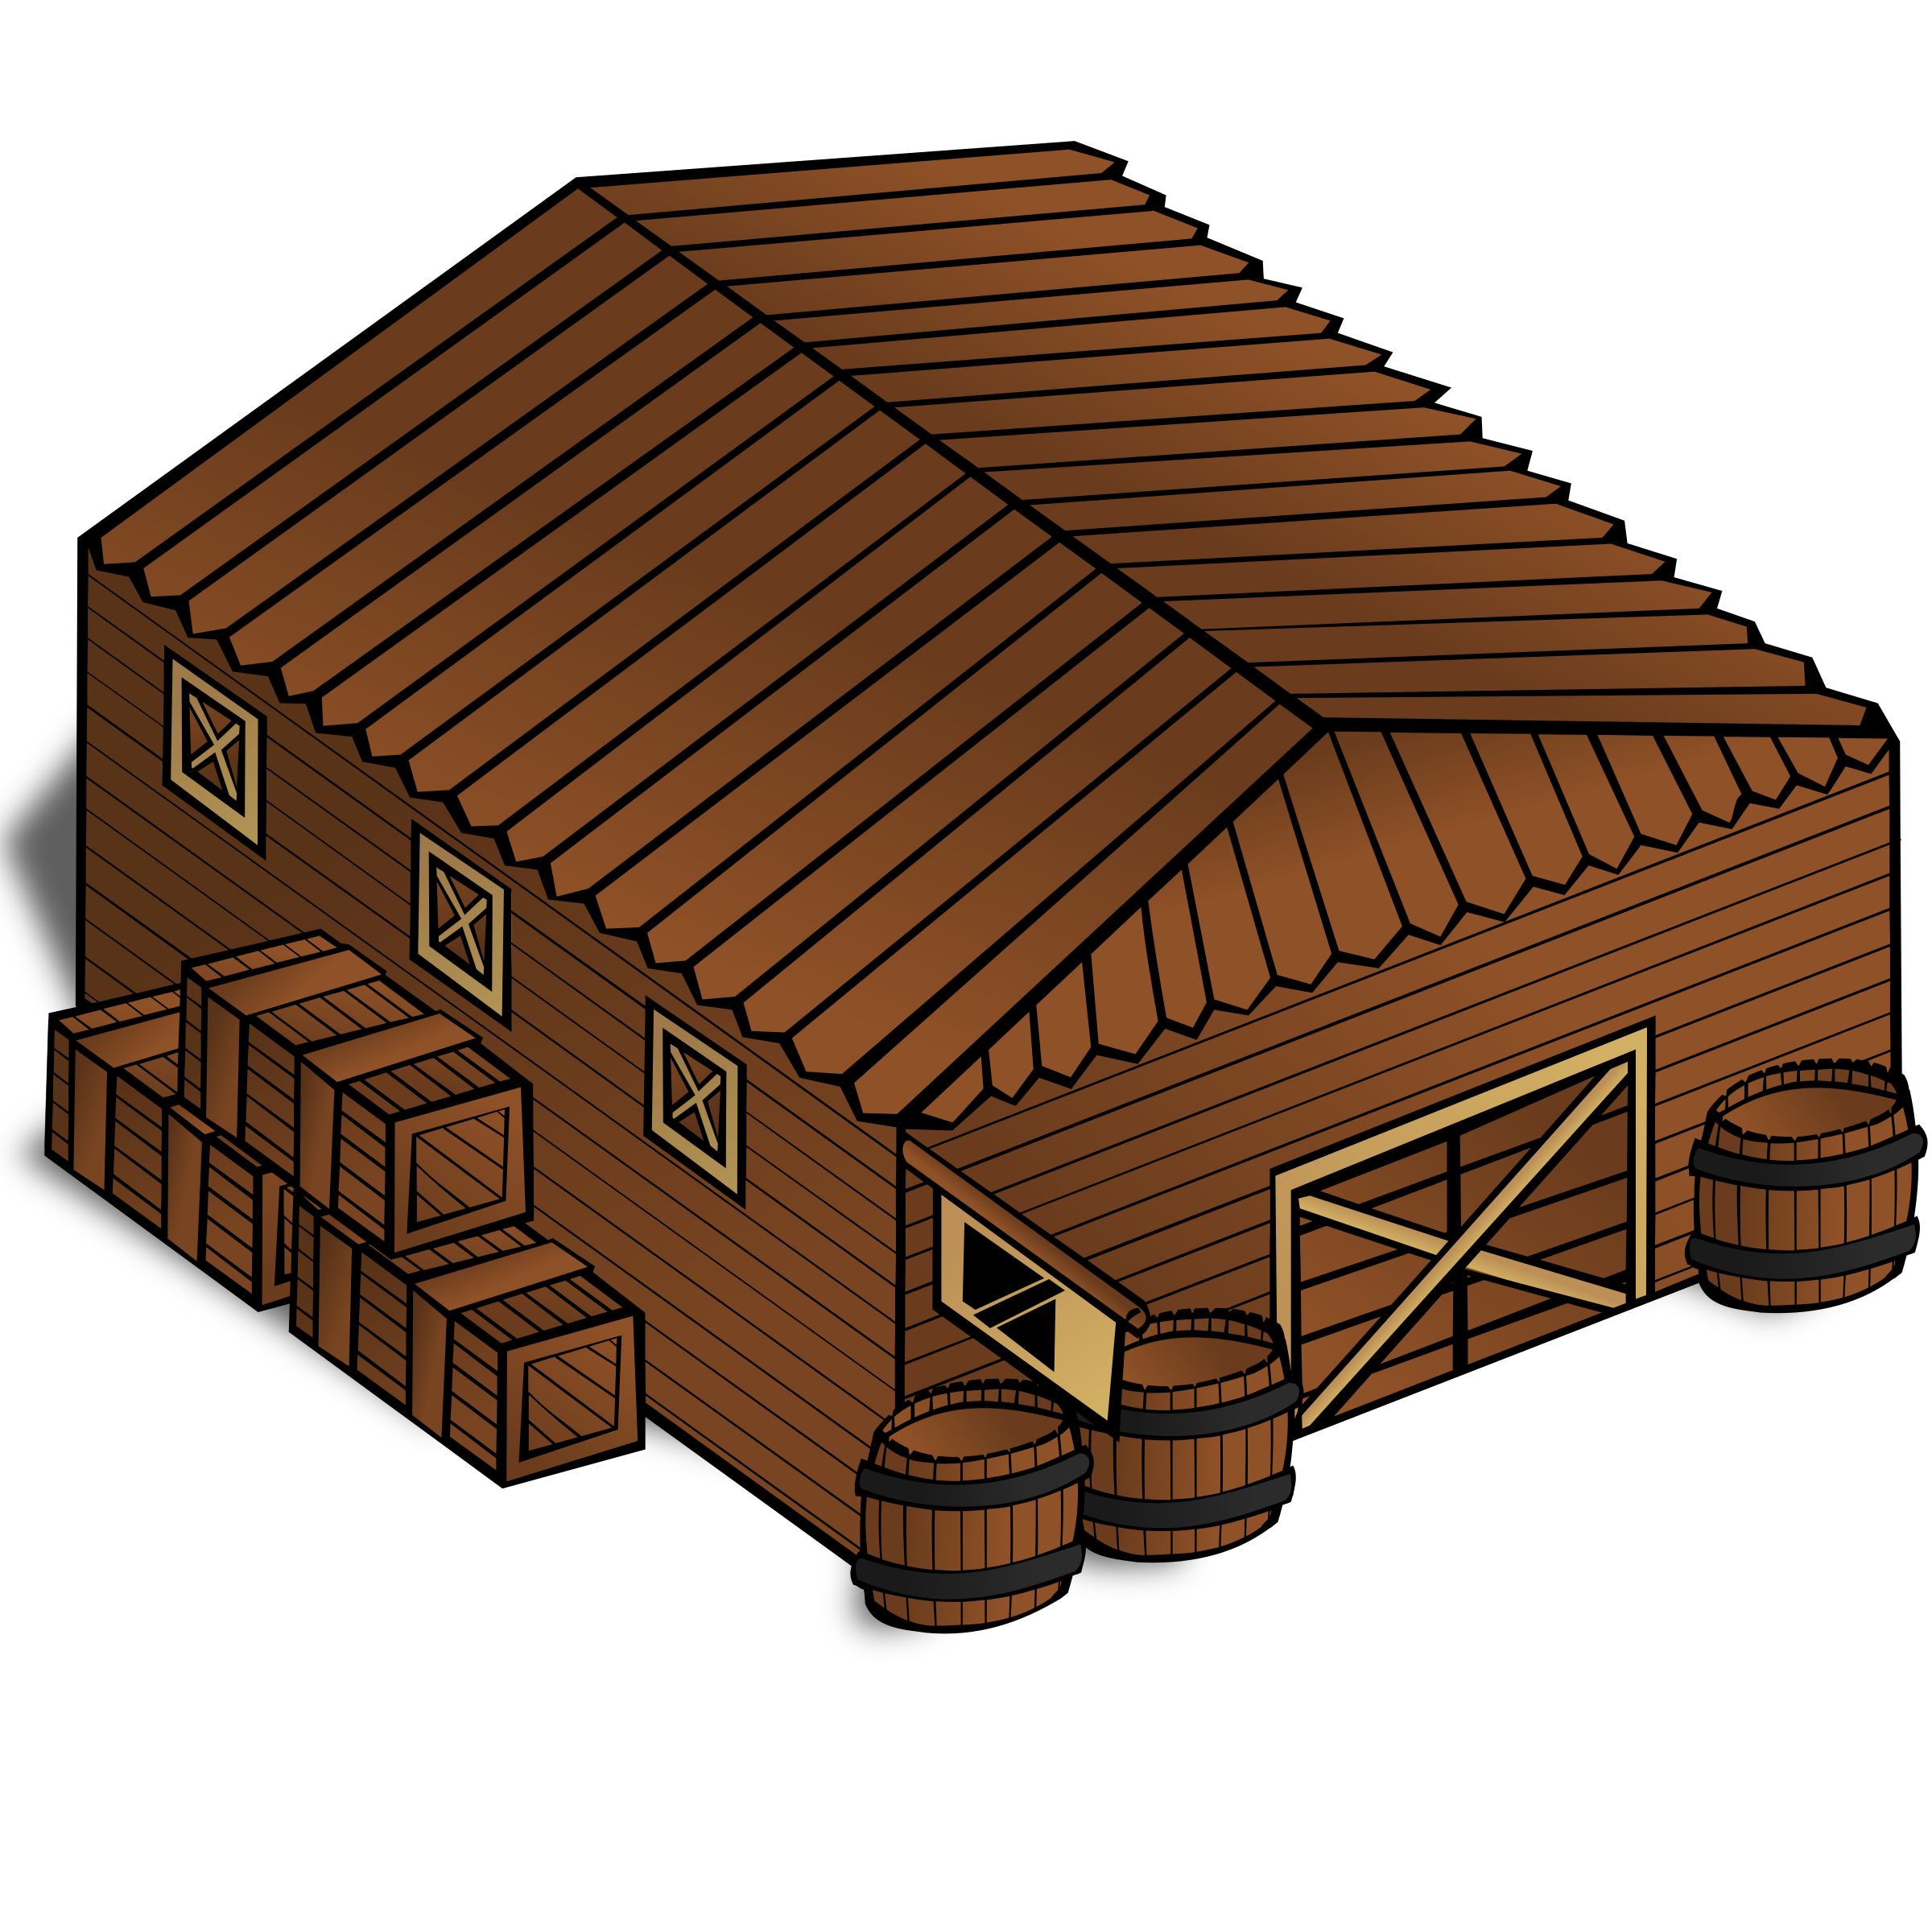 RPG map symbols: Warehouse by nicubunu